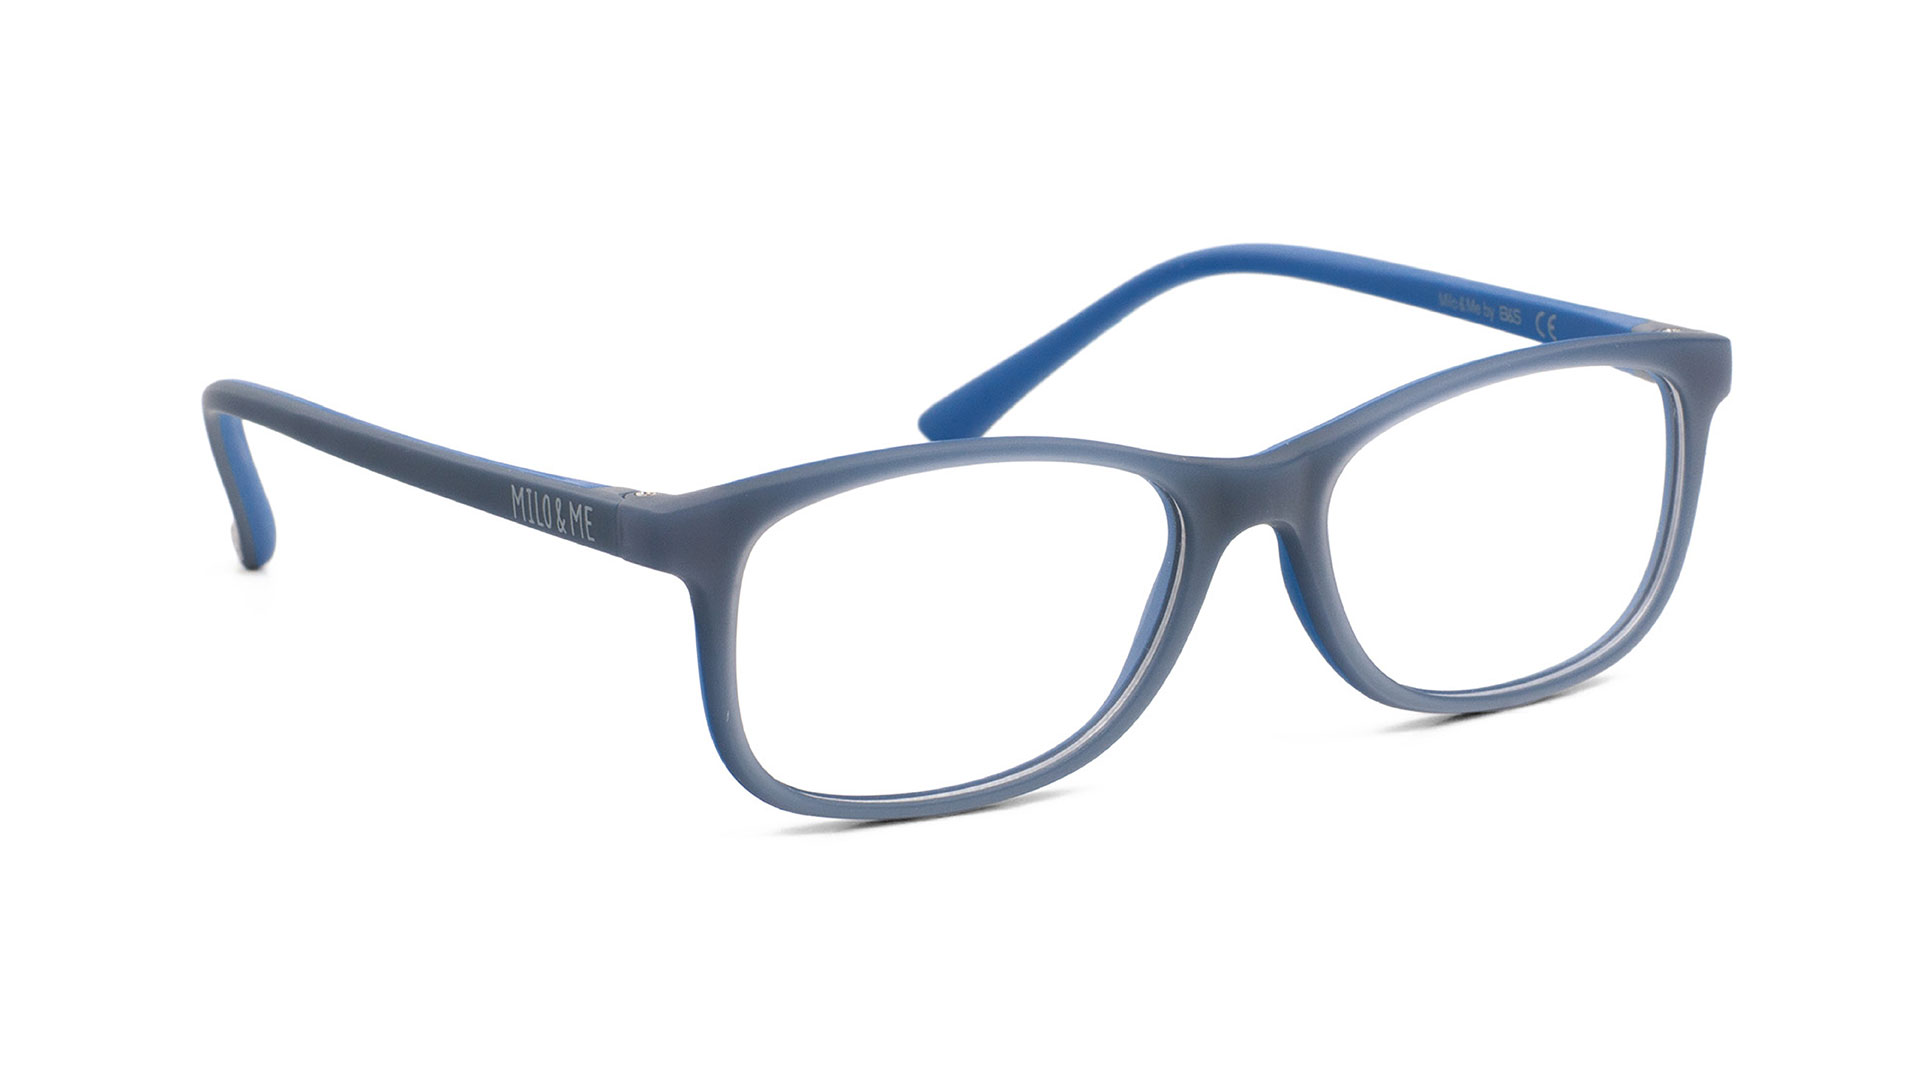 Grey Blue Blue H85041-20 - Milo & Me Eyewear - Optimum RX Lens Specialists